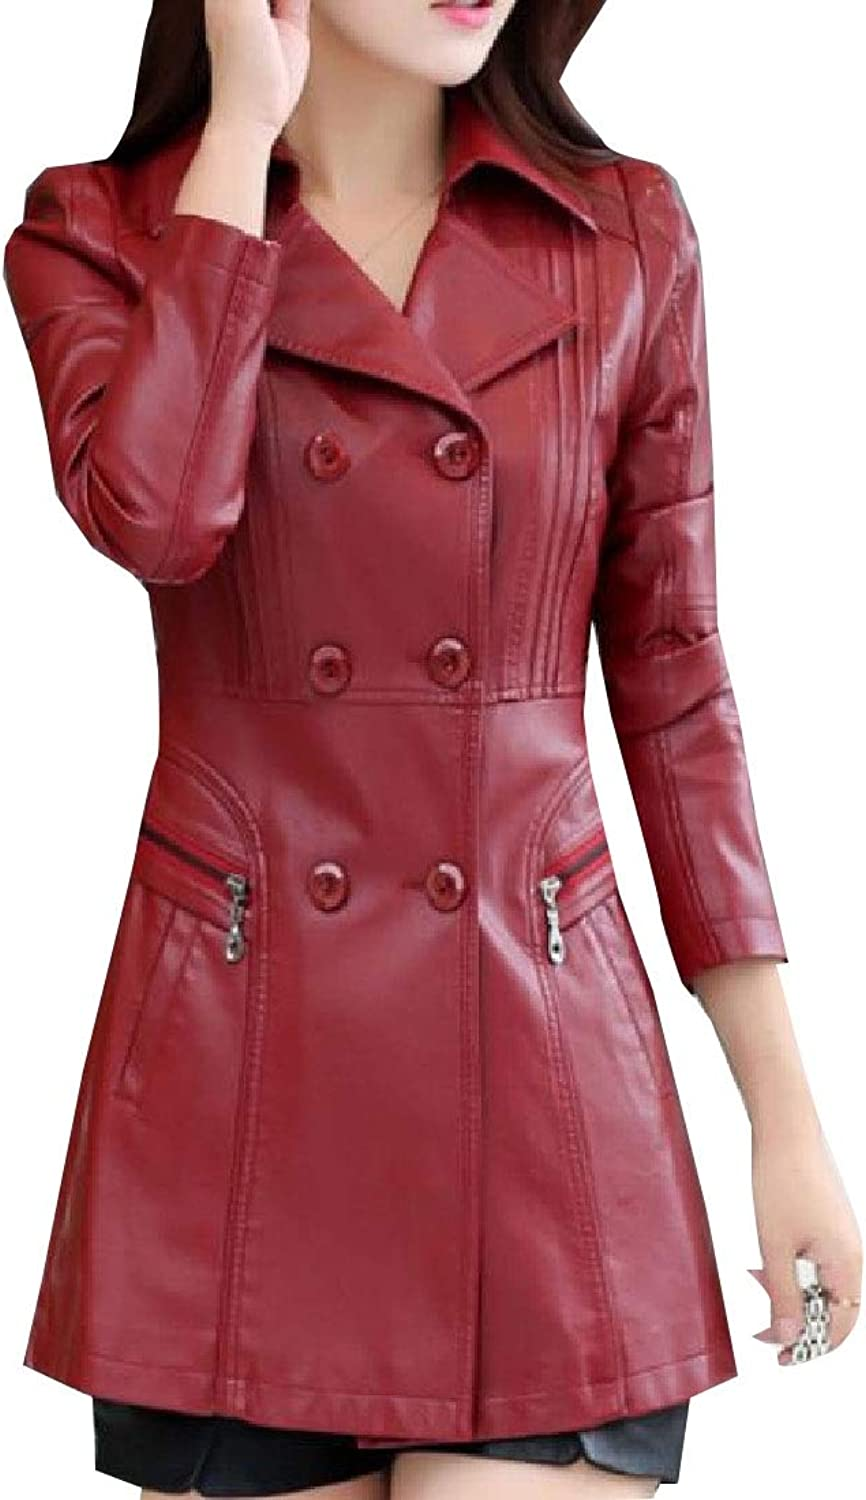 Maweisong Women Elegant Lapel Double Breasted Faux Leather Trench Coat Jacket